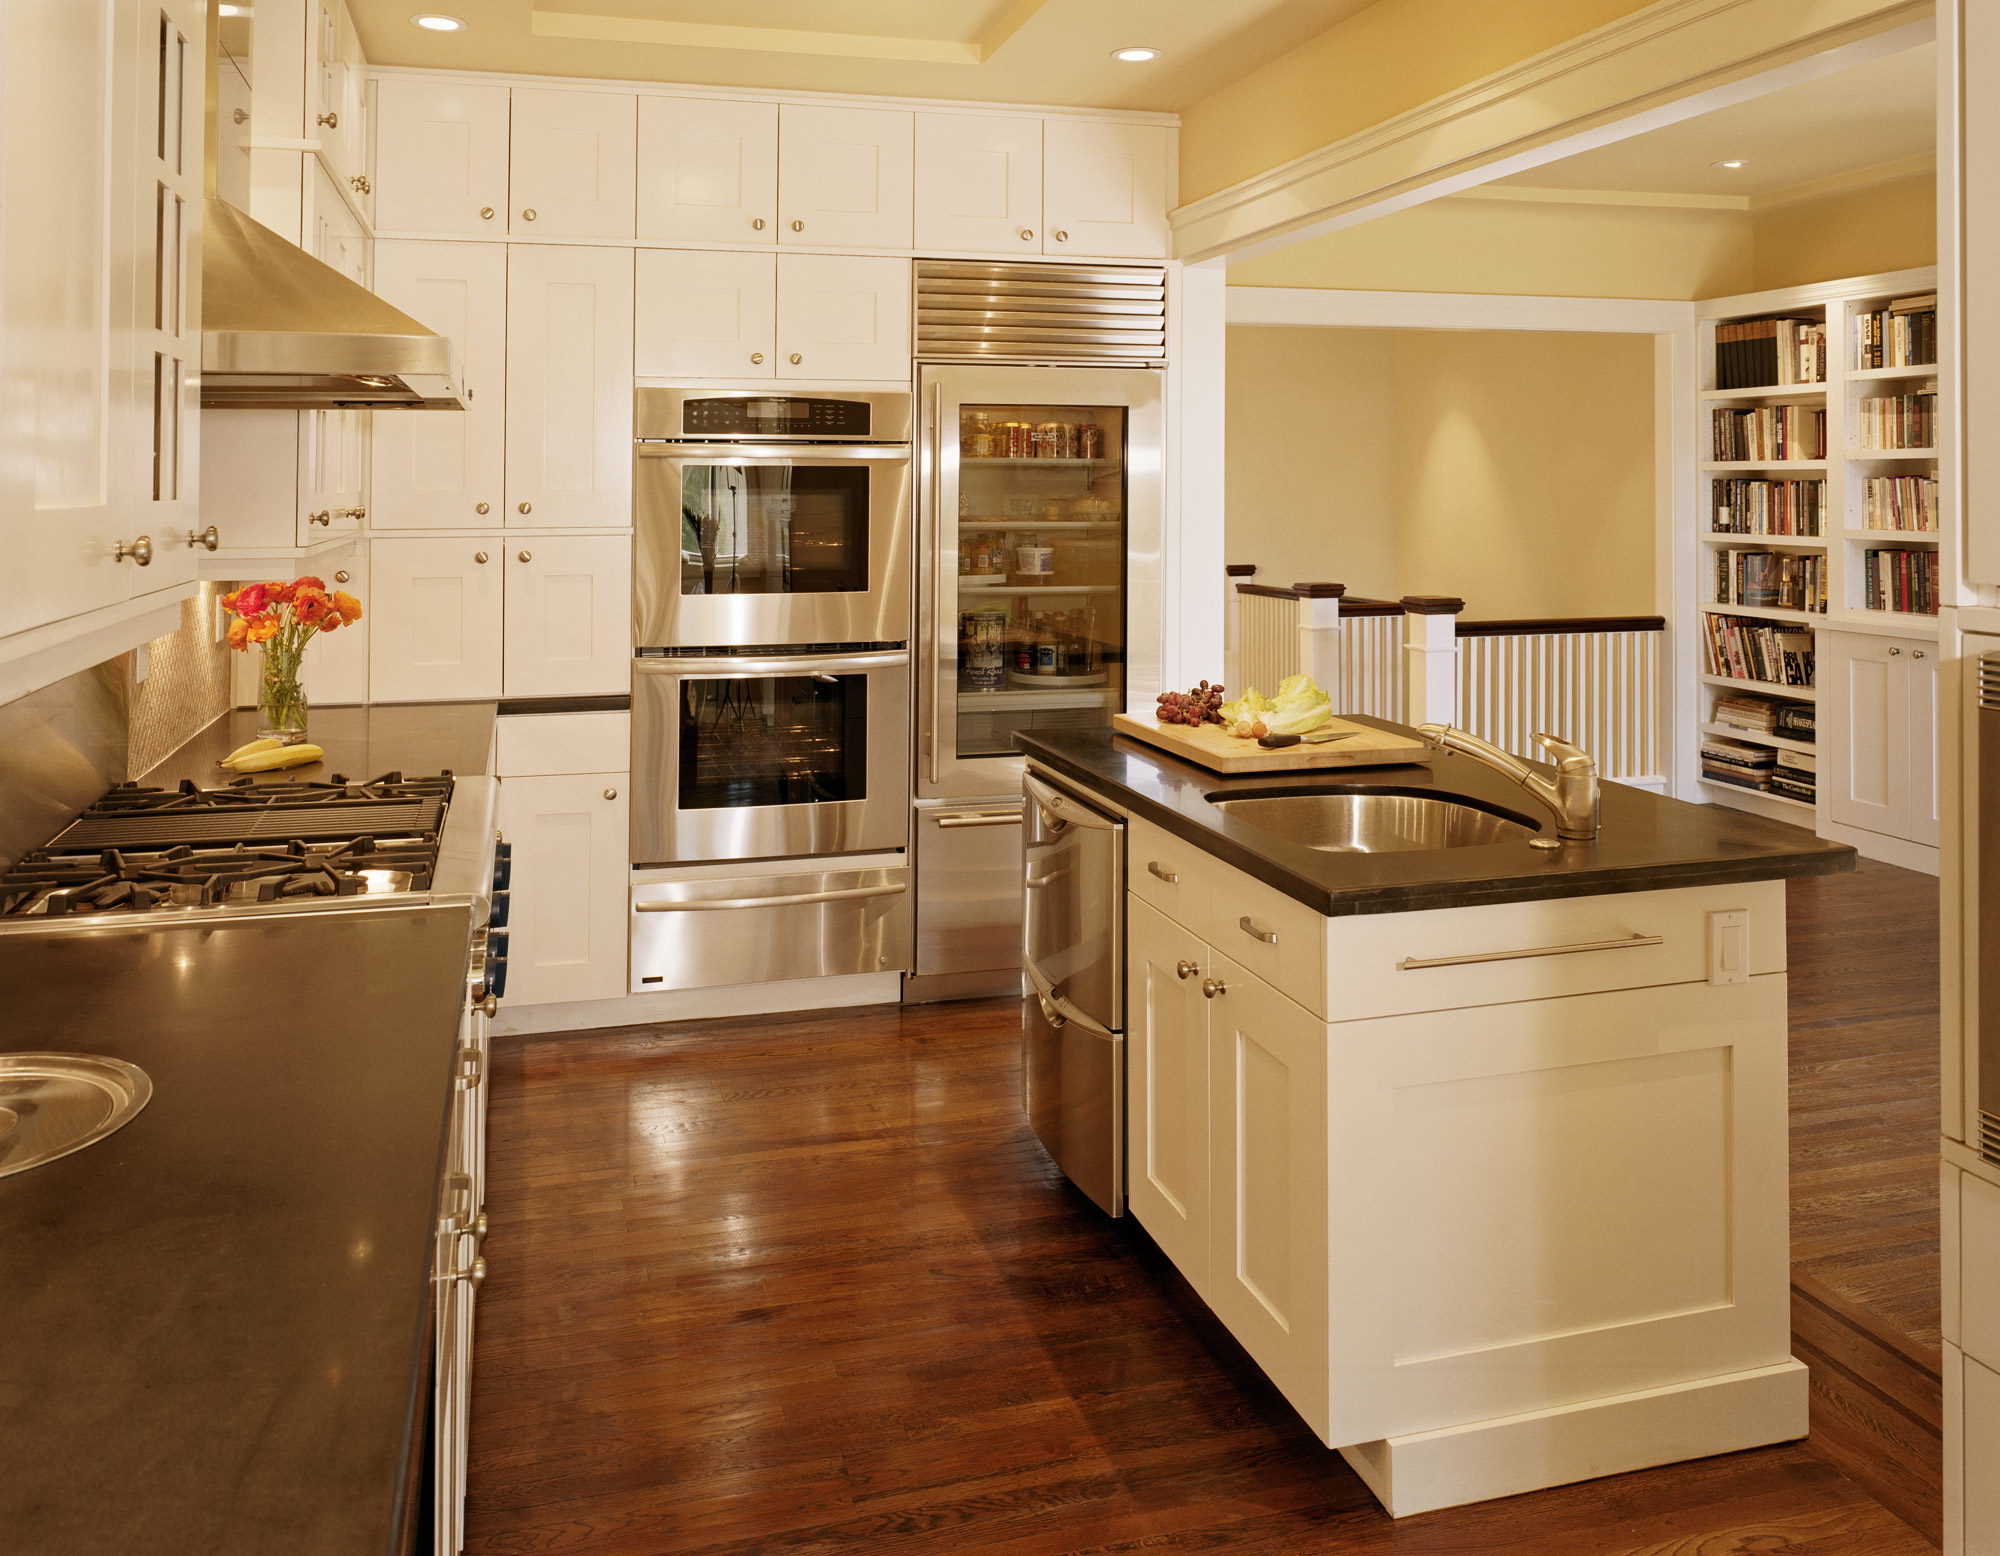 View of kitchen and island.jpg